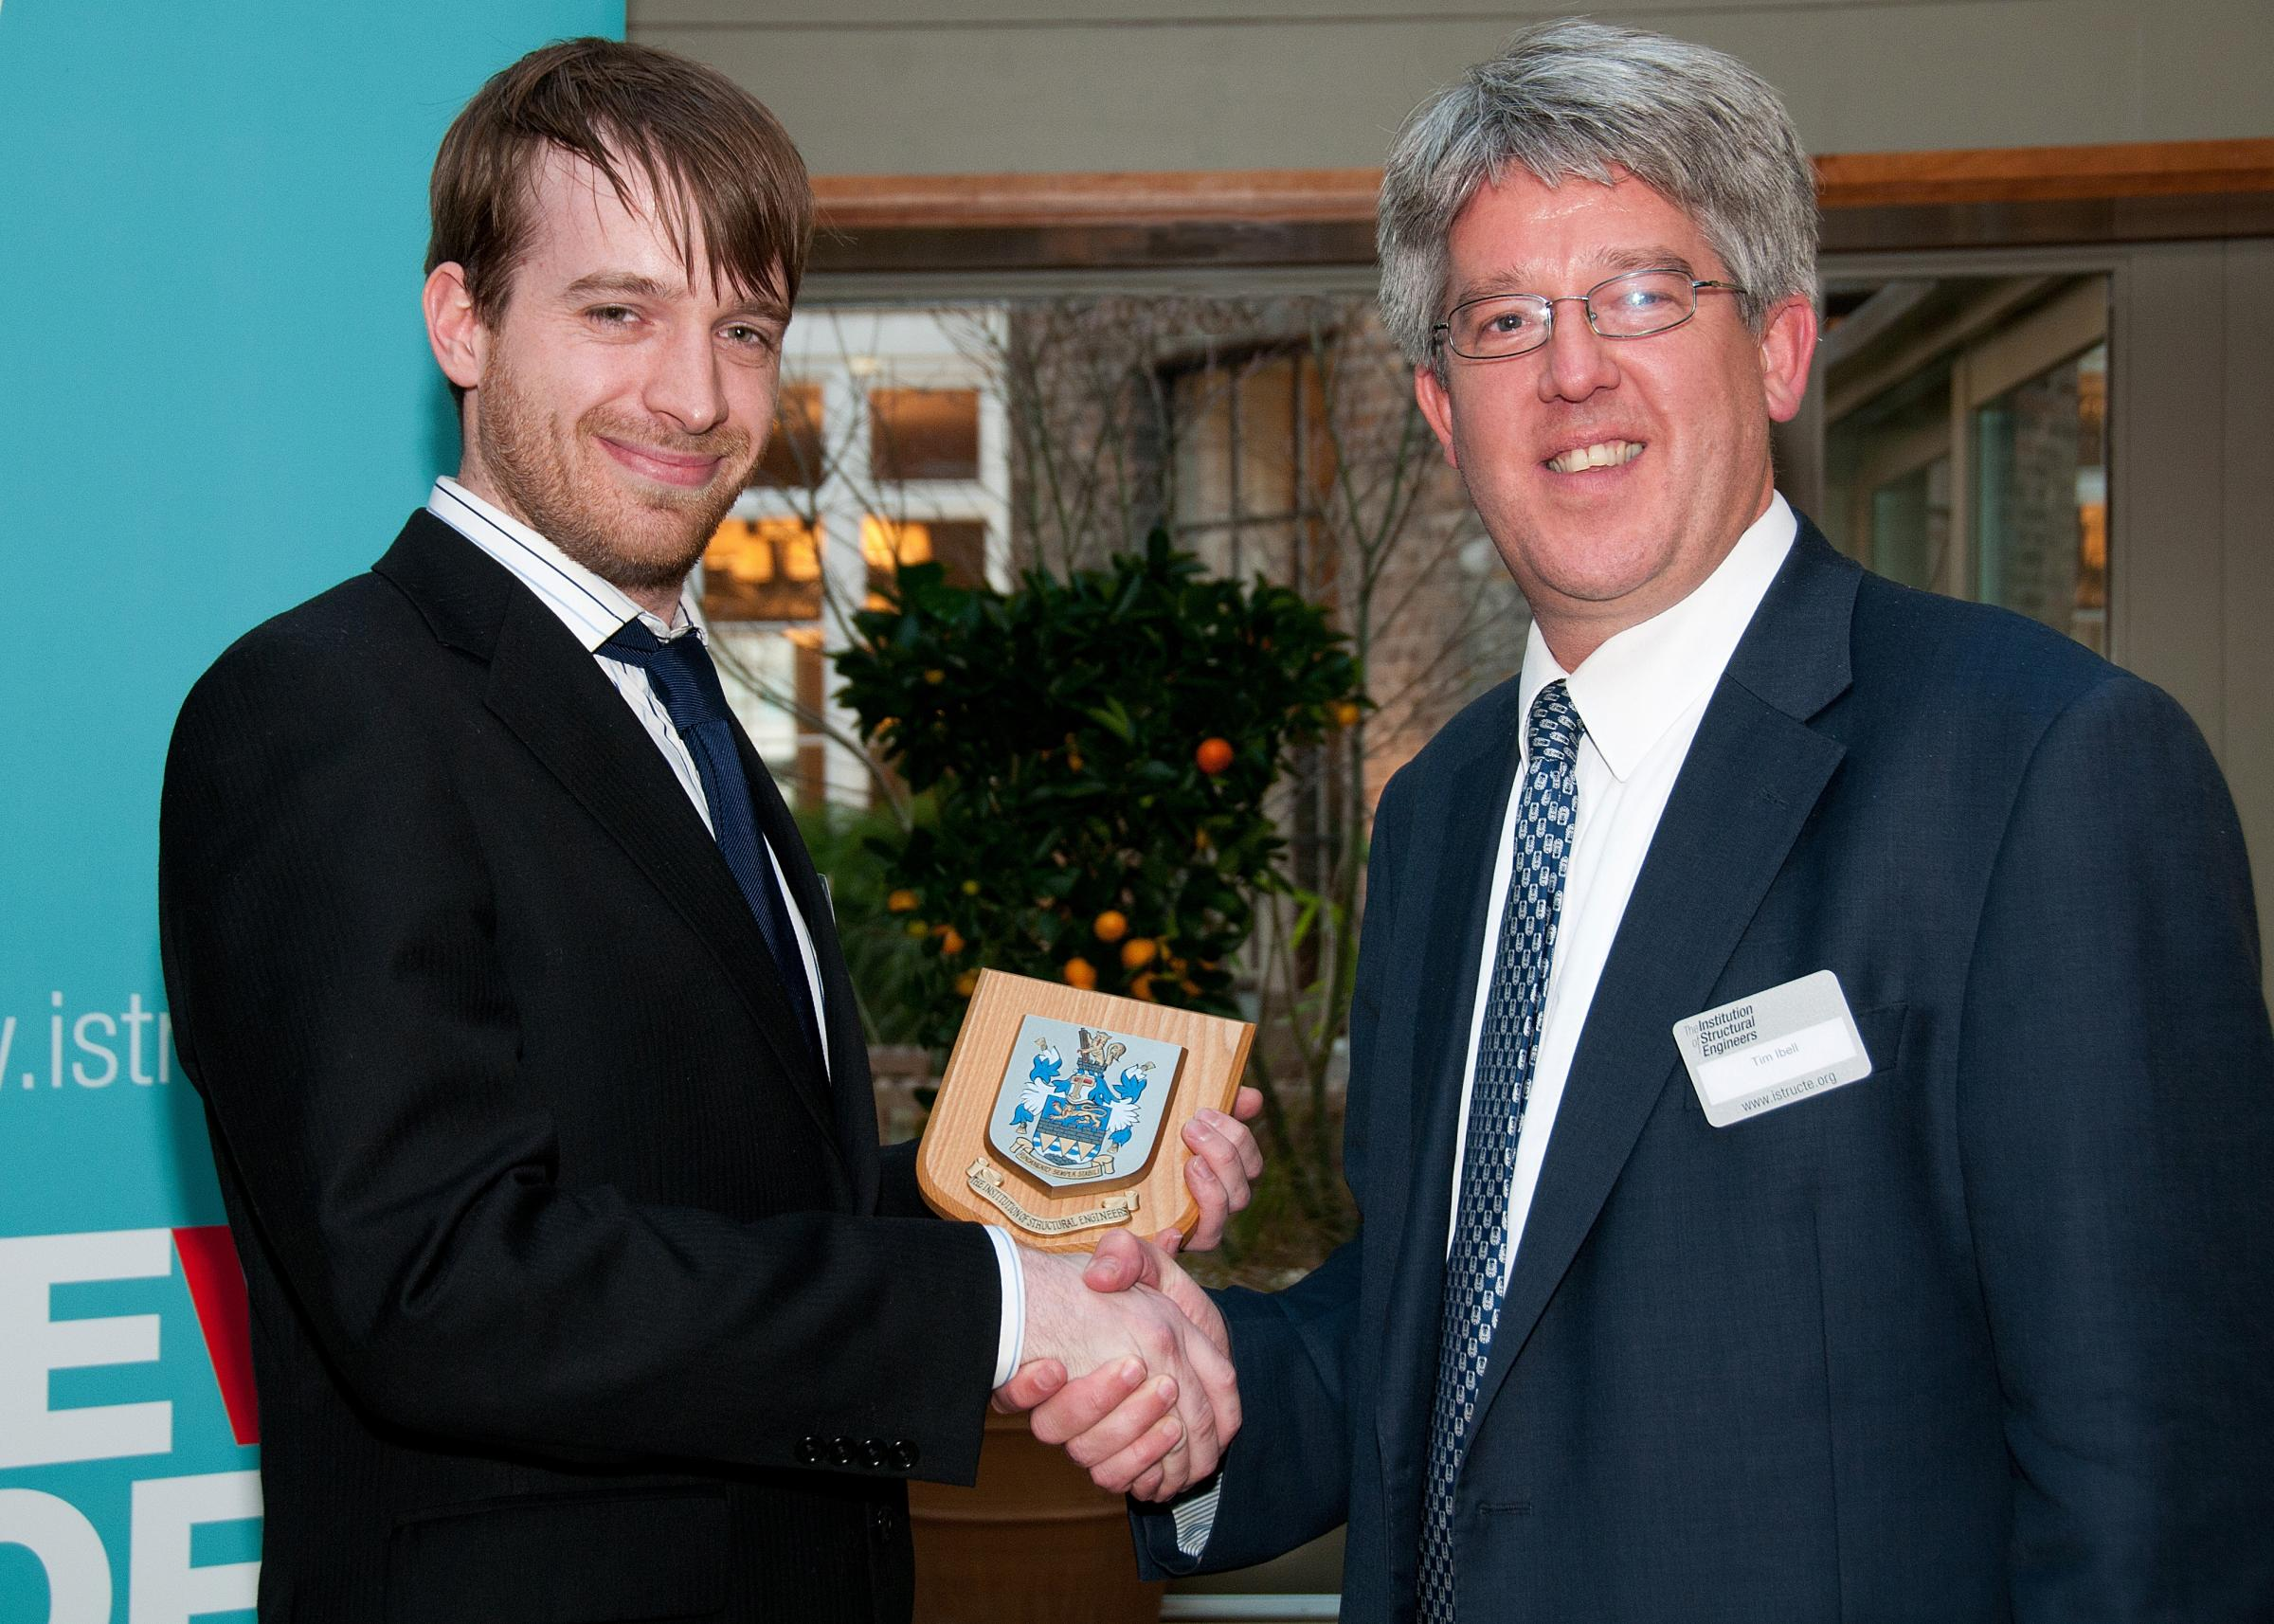 Laurence Clough receives his award from conference chairman